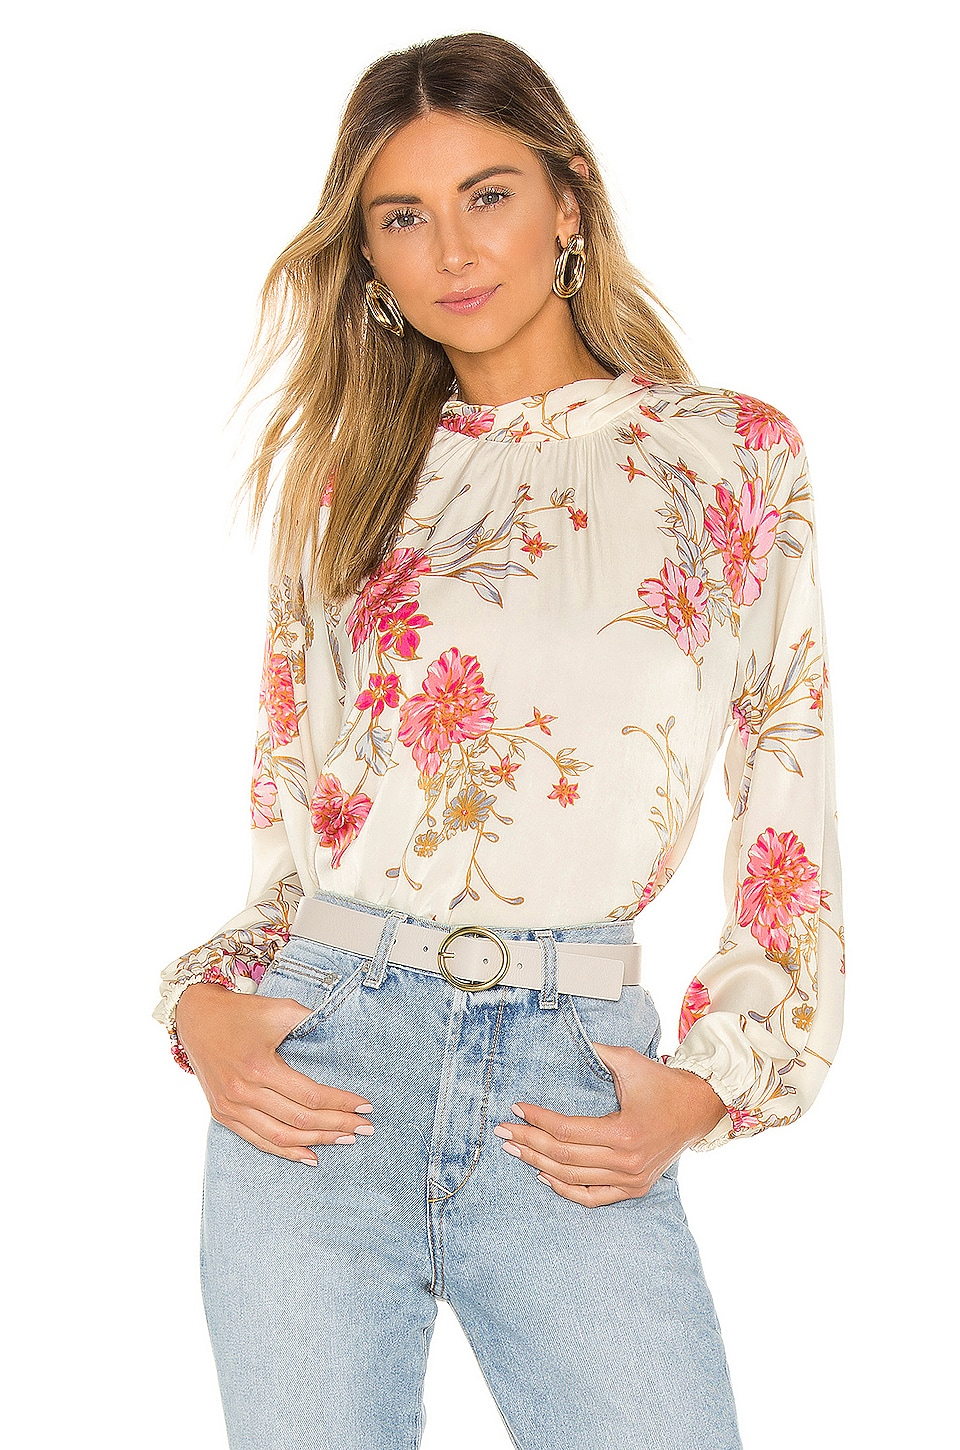 MISA Los Angeles Thea Blouse in Ivory Floral